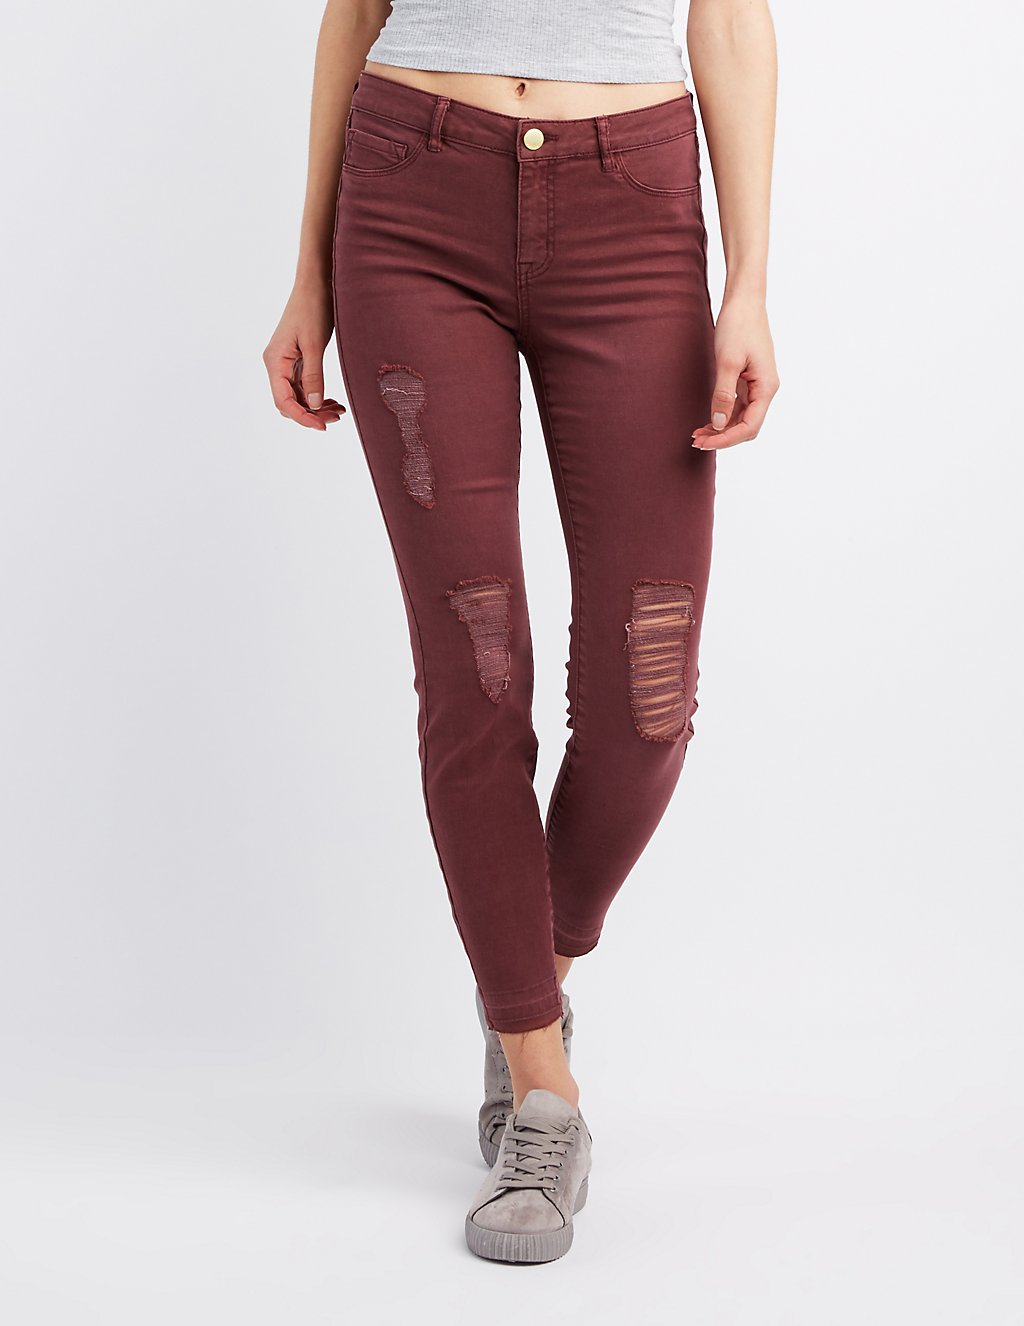 791ec21fac52 Teen girls  clothes and shoes that are trending right now – Eyes of ...